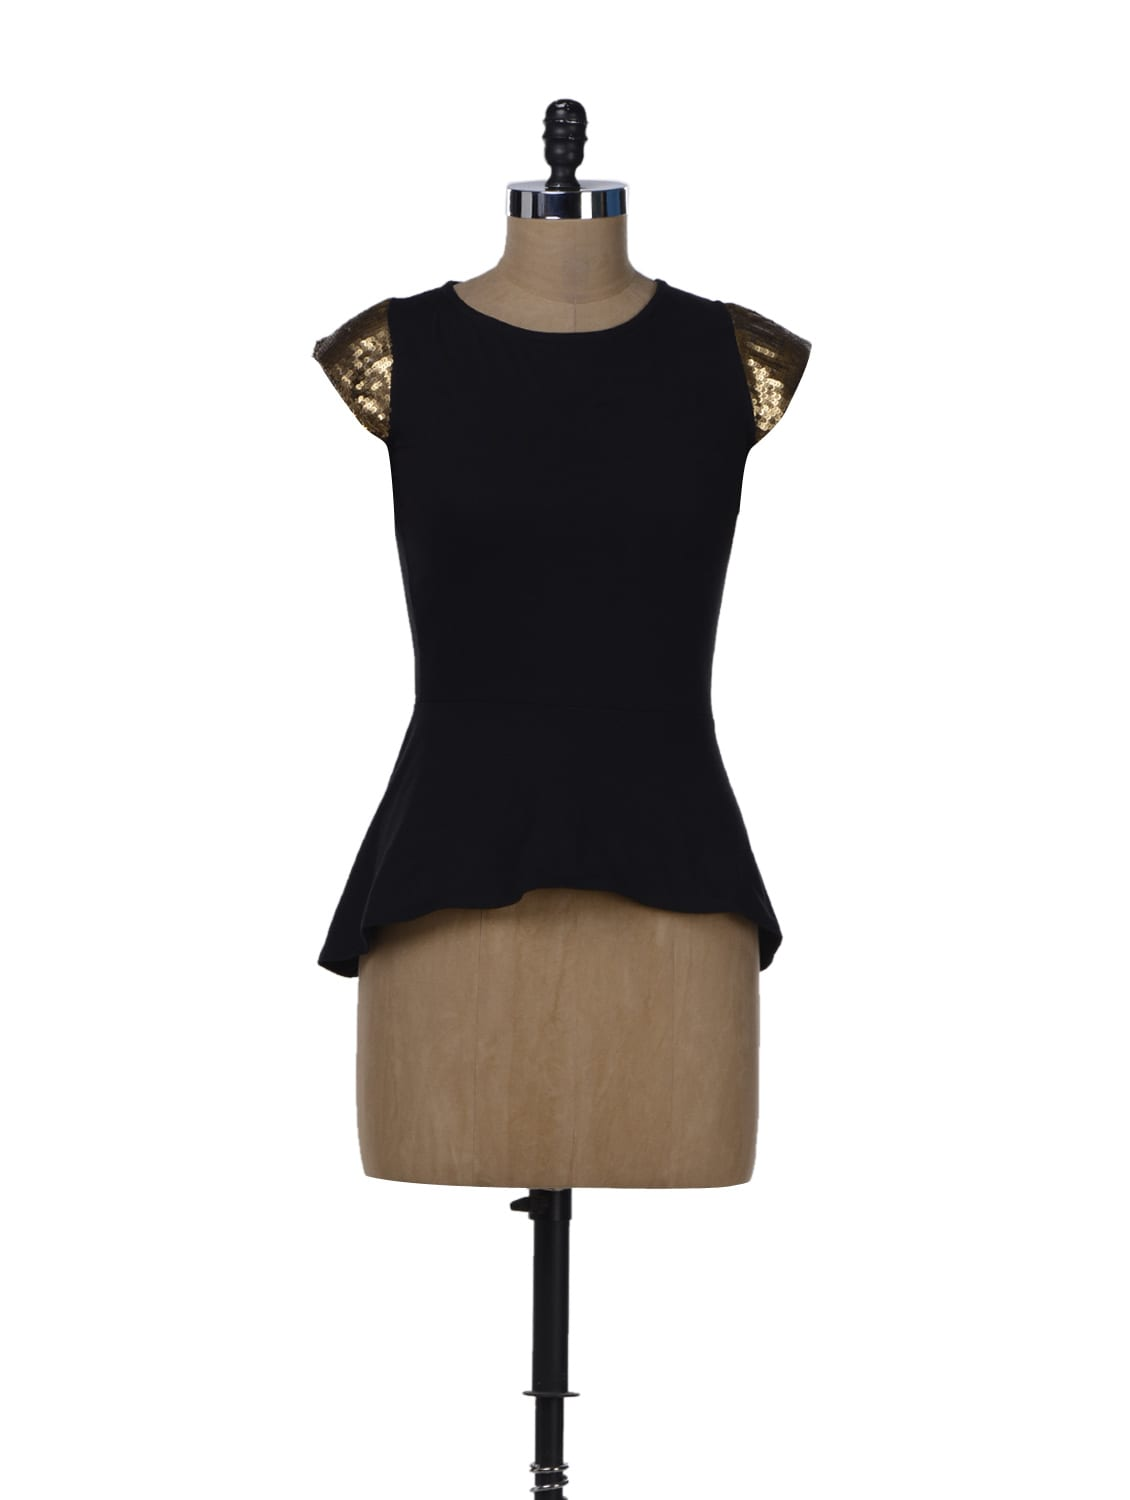 Black Peplum Top With Gold Sleeves - Miss Chase